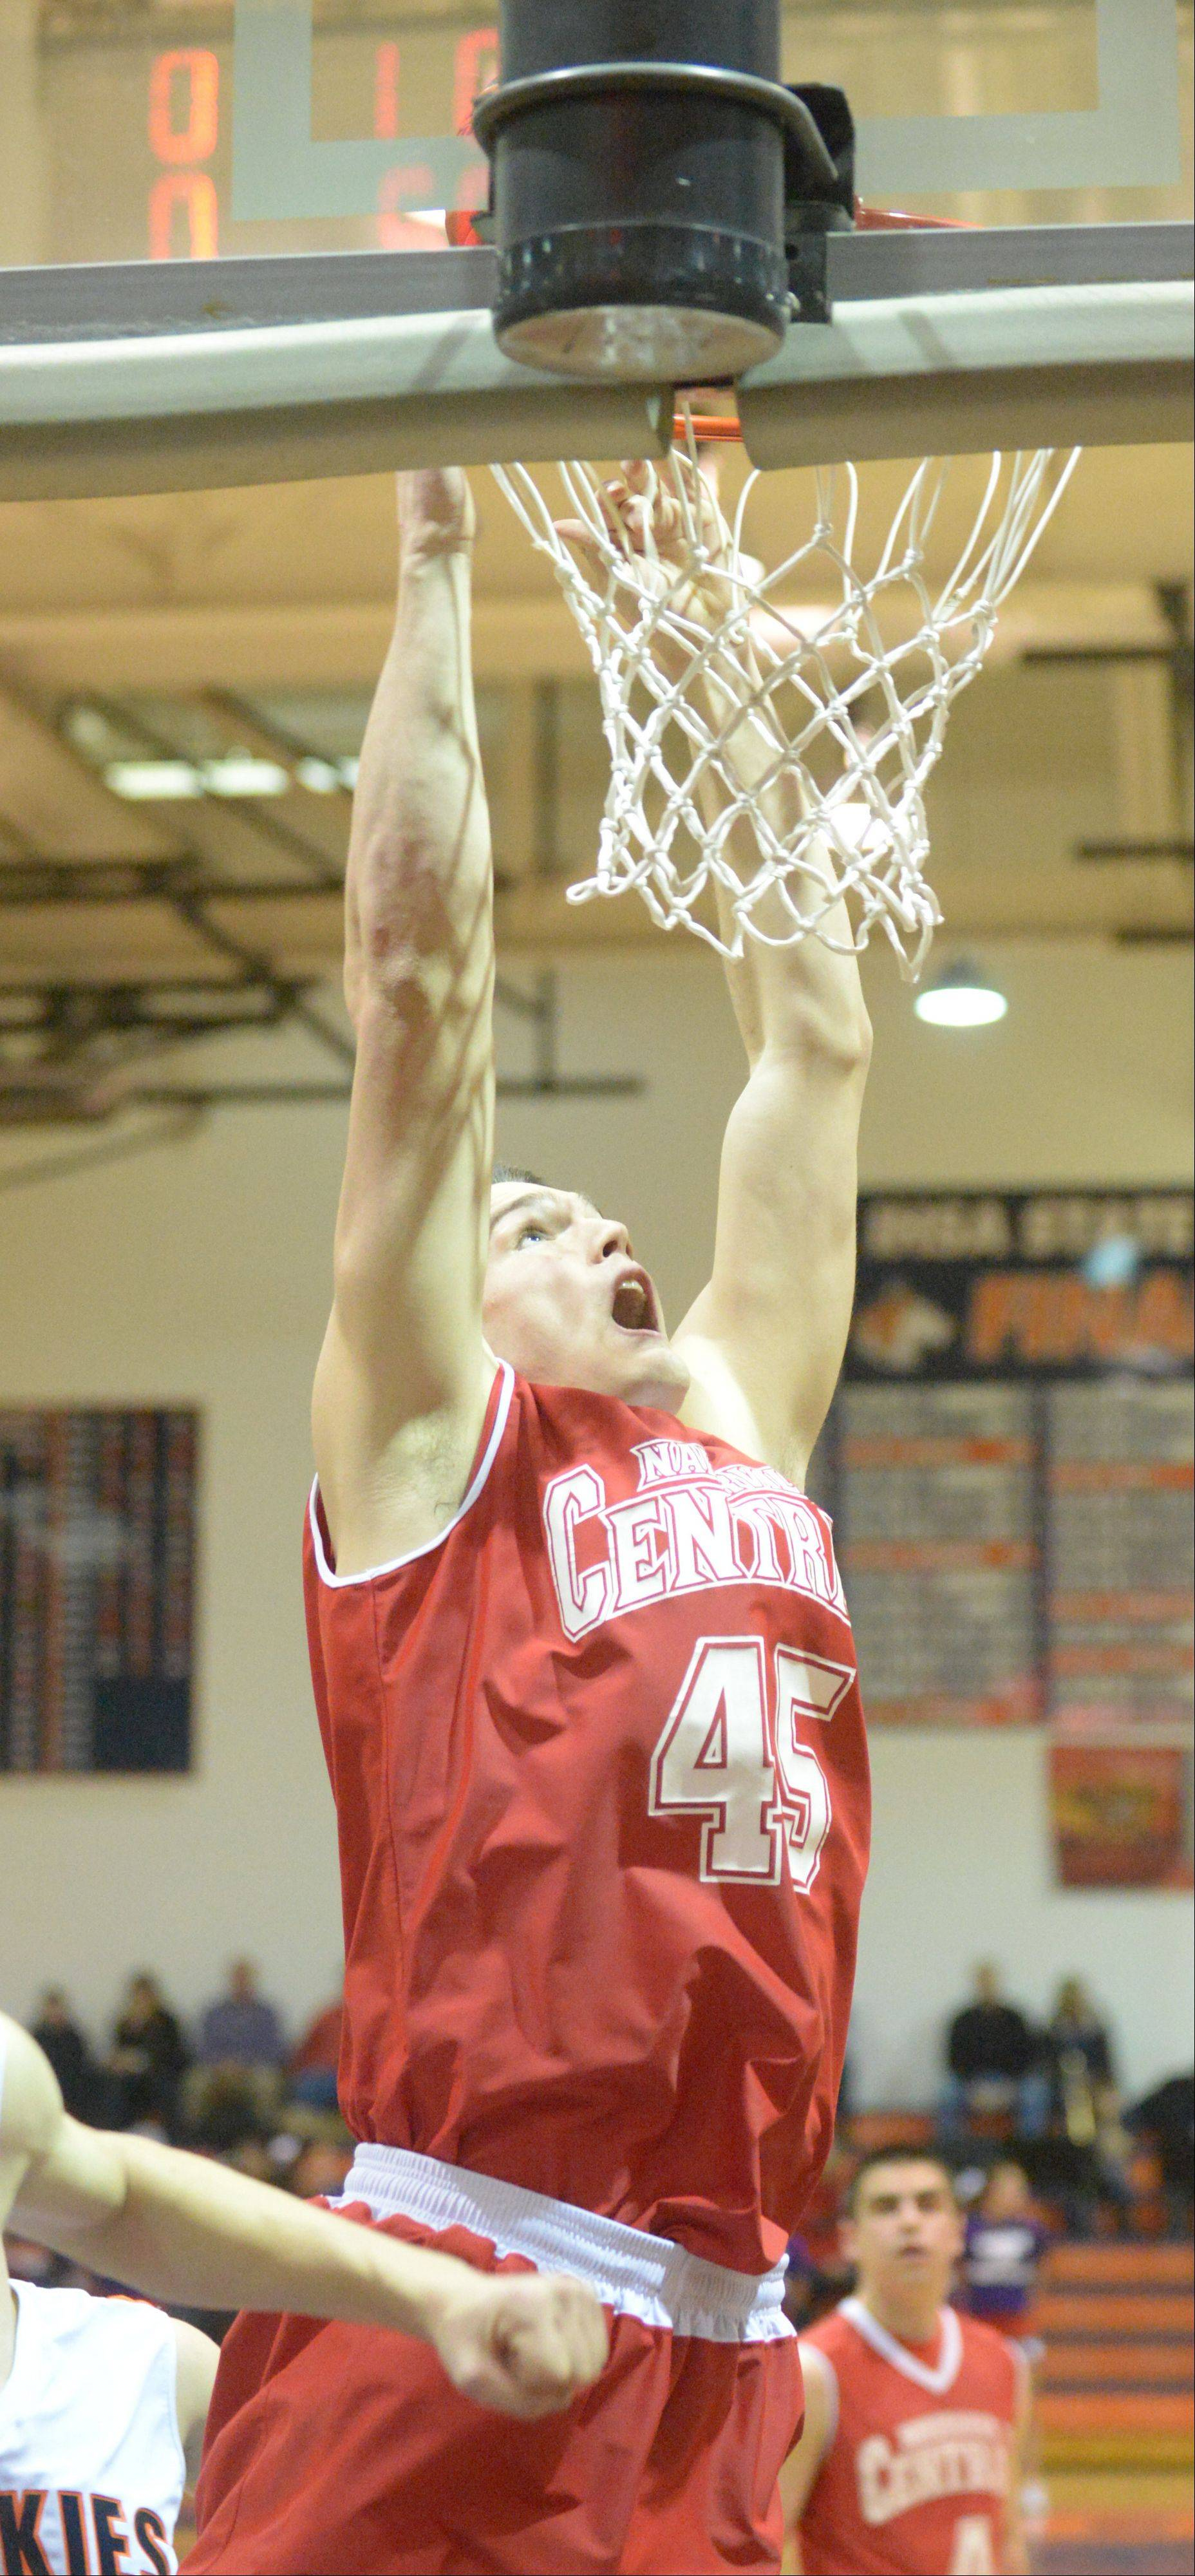 Photos from the Naperville Central at Naperville North boys basketball game Friday, Jan. 24 in Naperville.